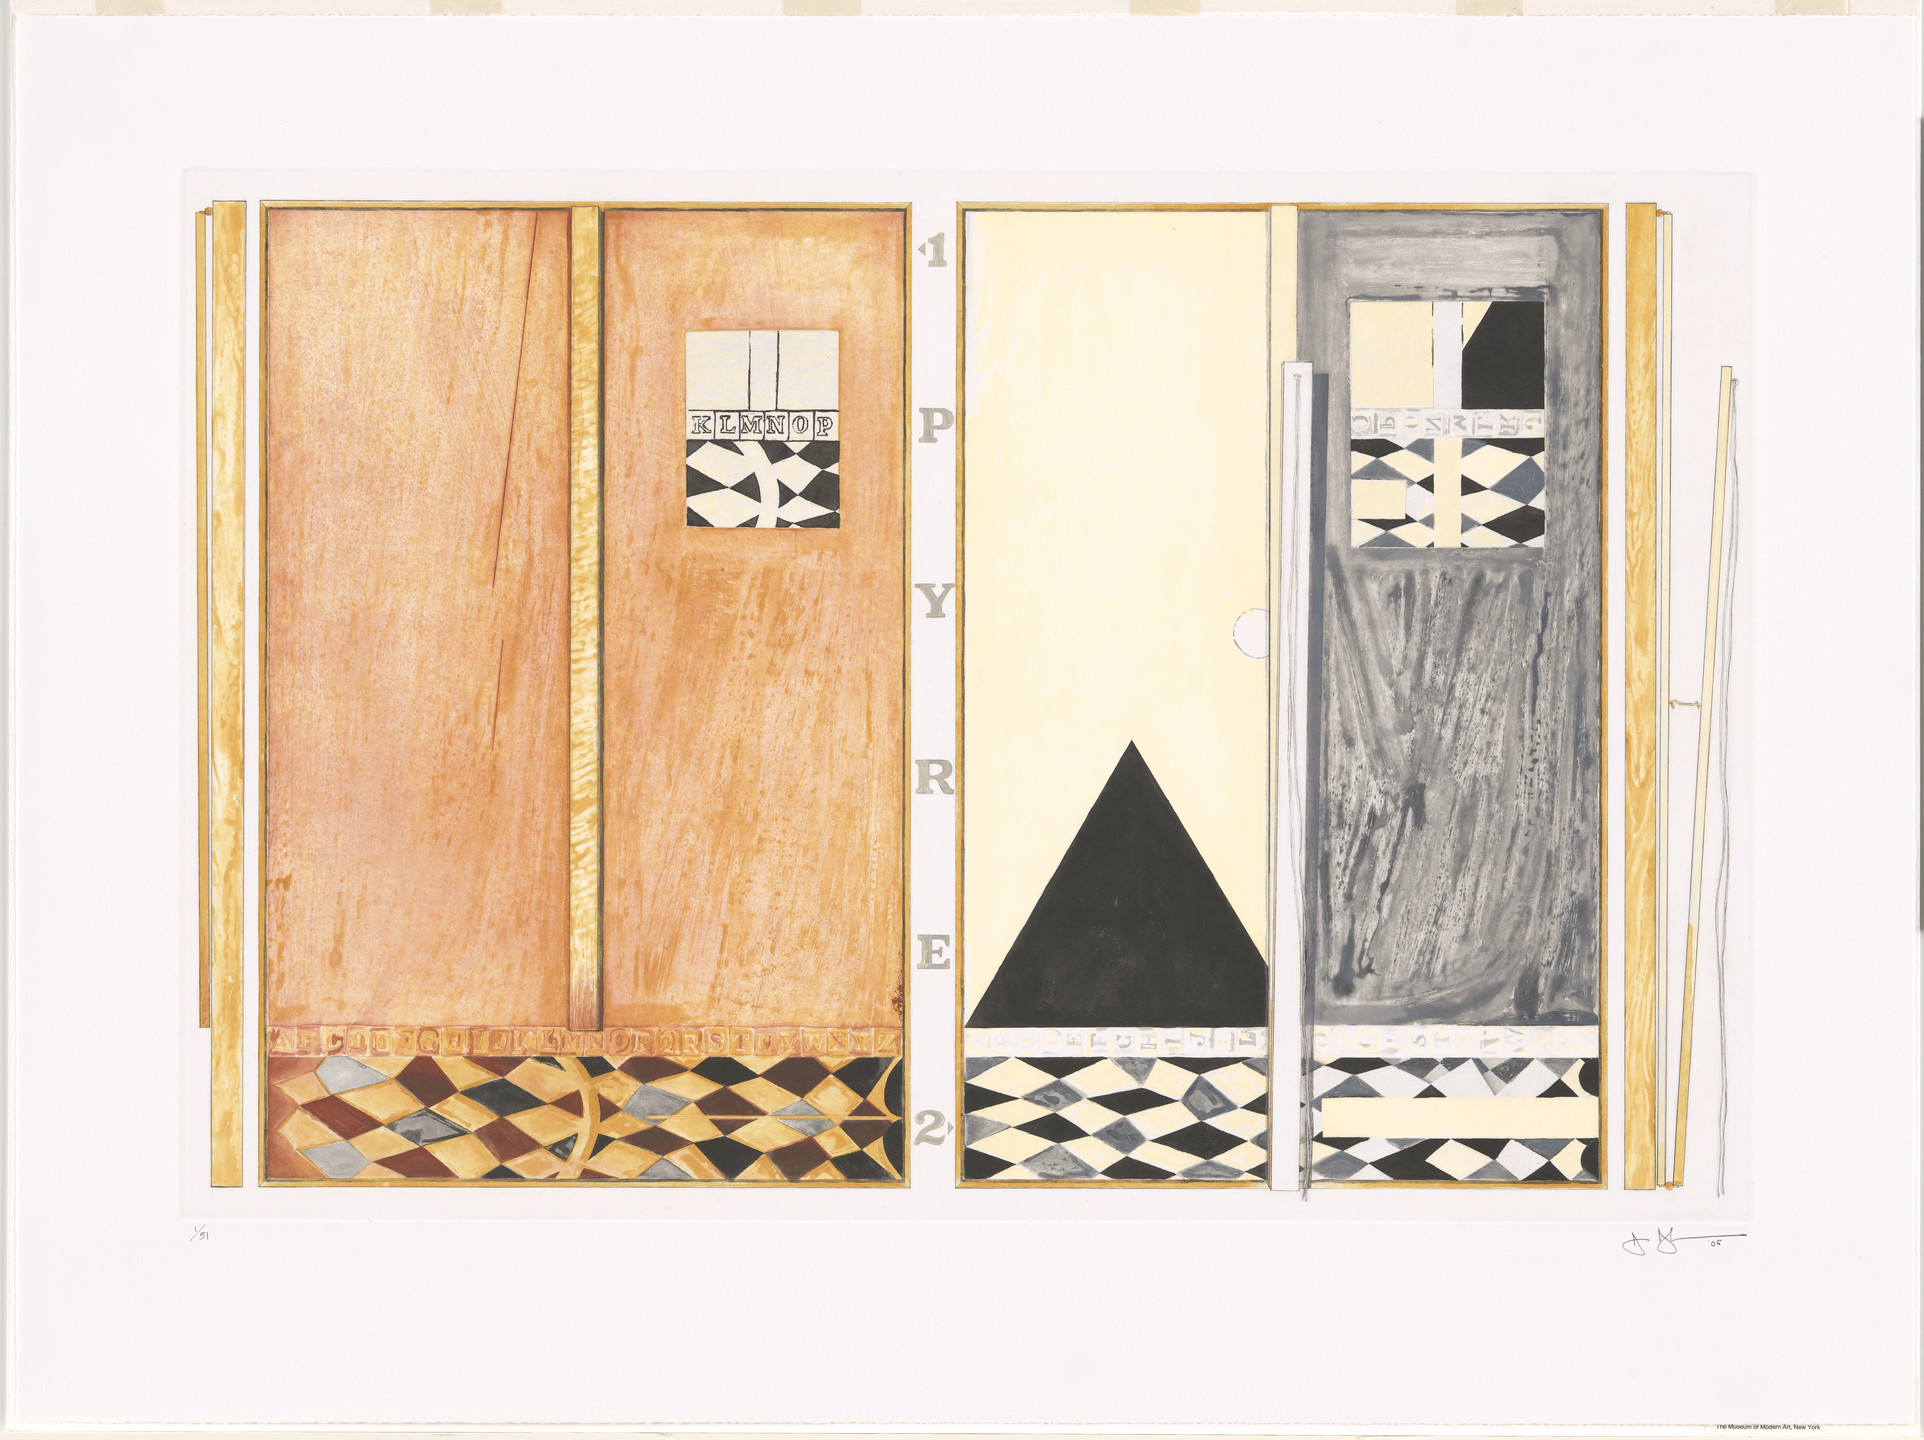 Jasper Johns. Pyre 1 and 2. 2005